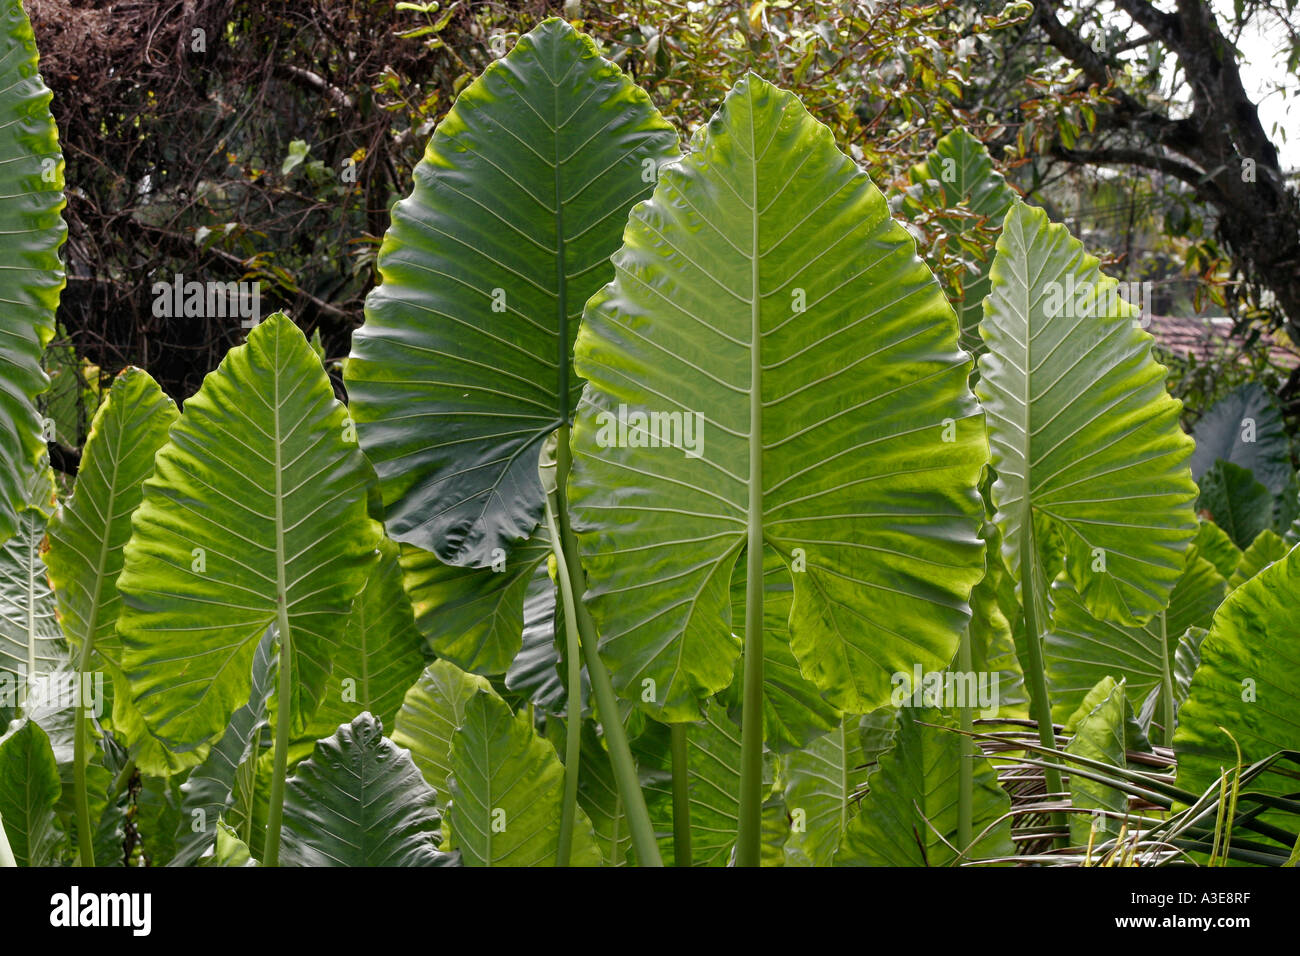 Sri Lanka Tropical Plant With Large Leaves Standing Upright Stock